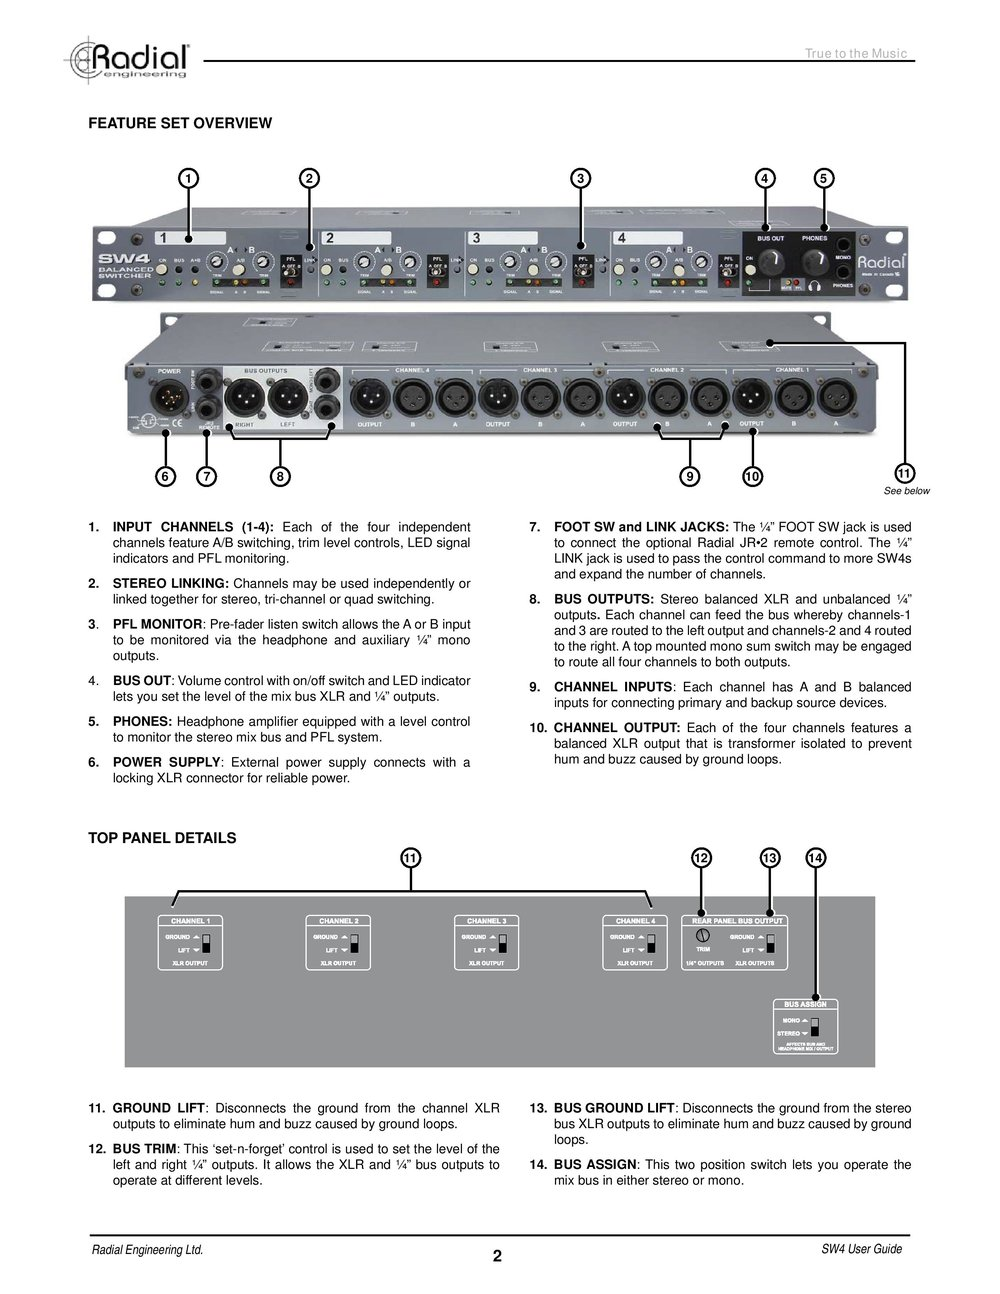 sw4-userguide-page-004.jpg